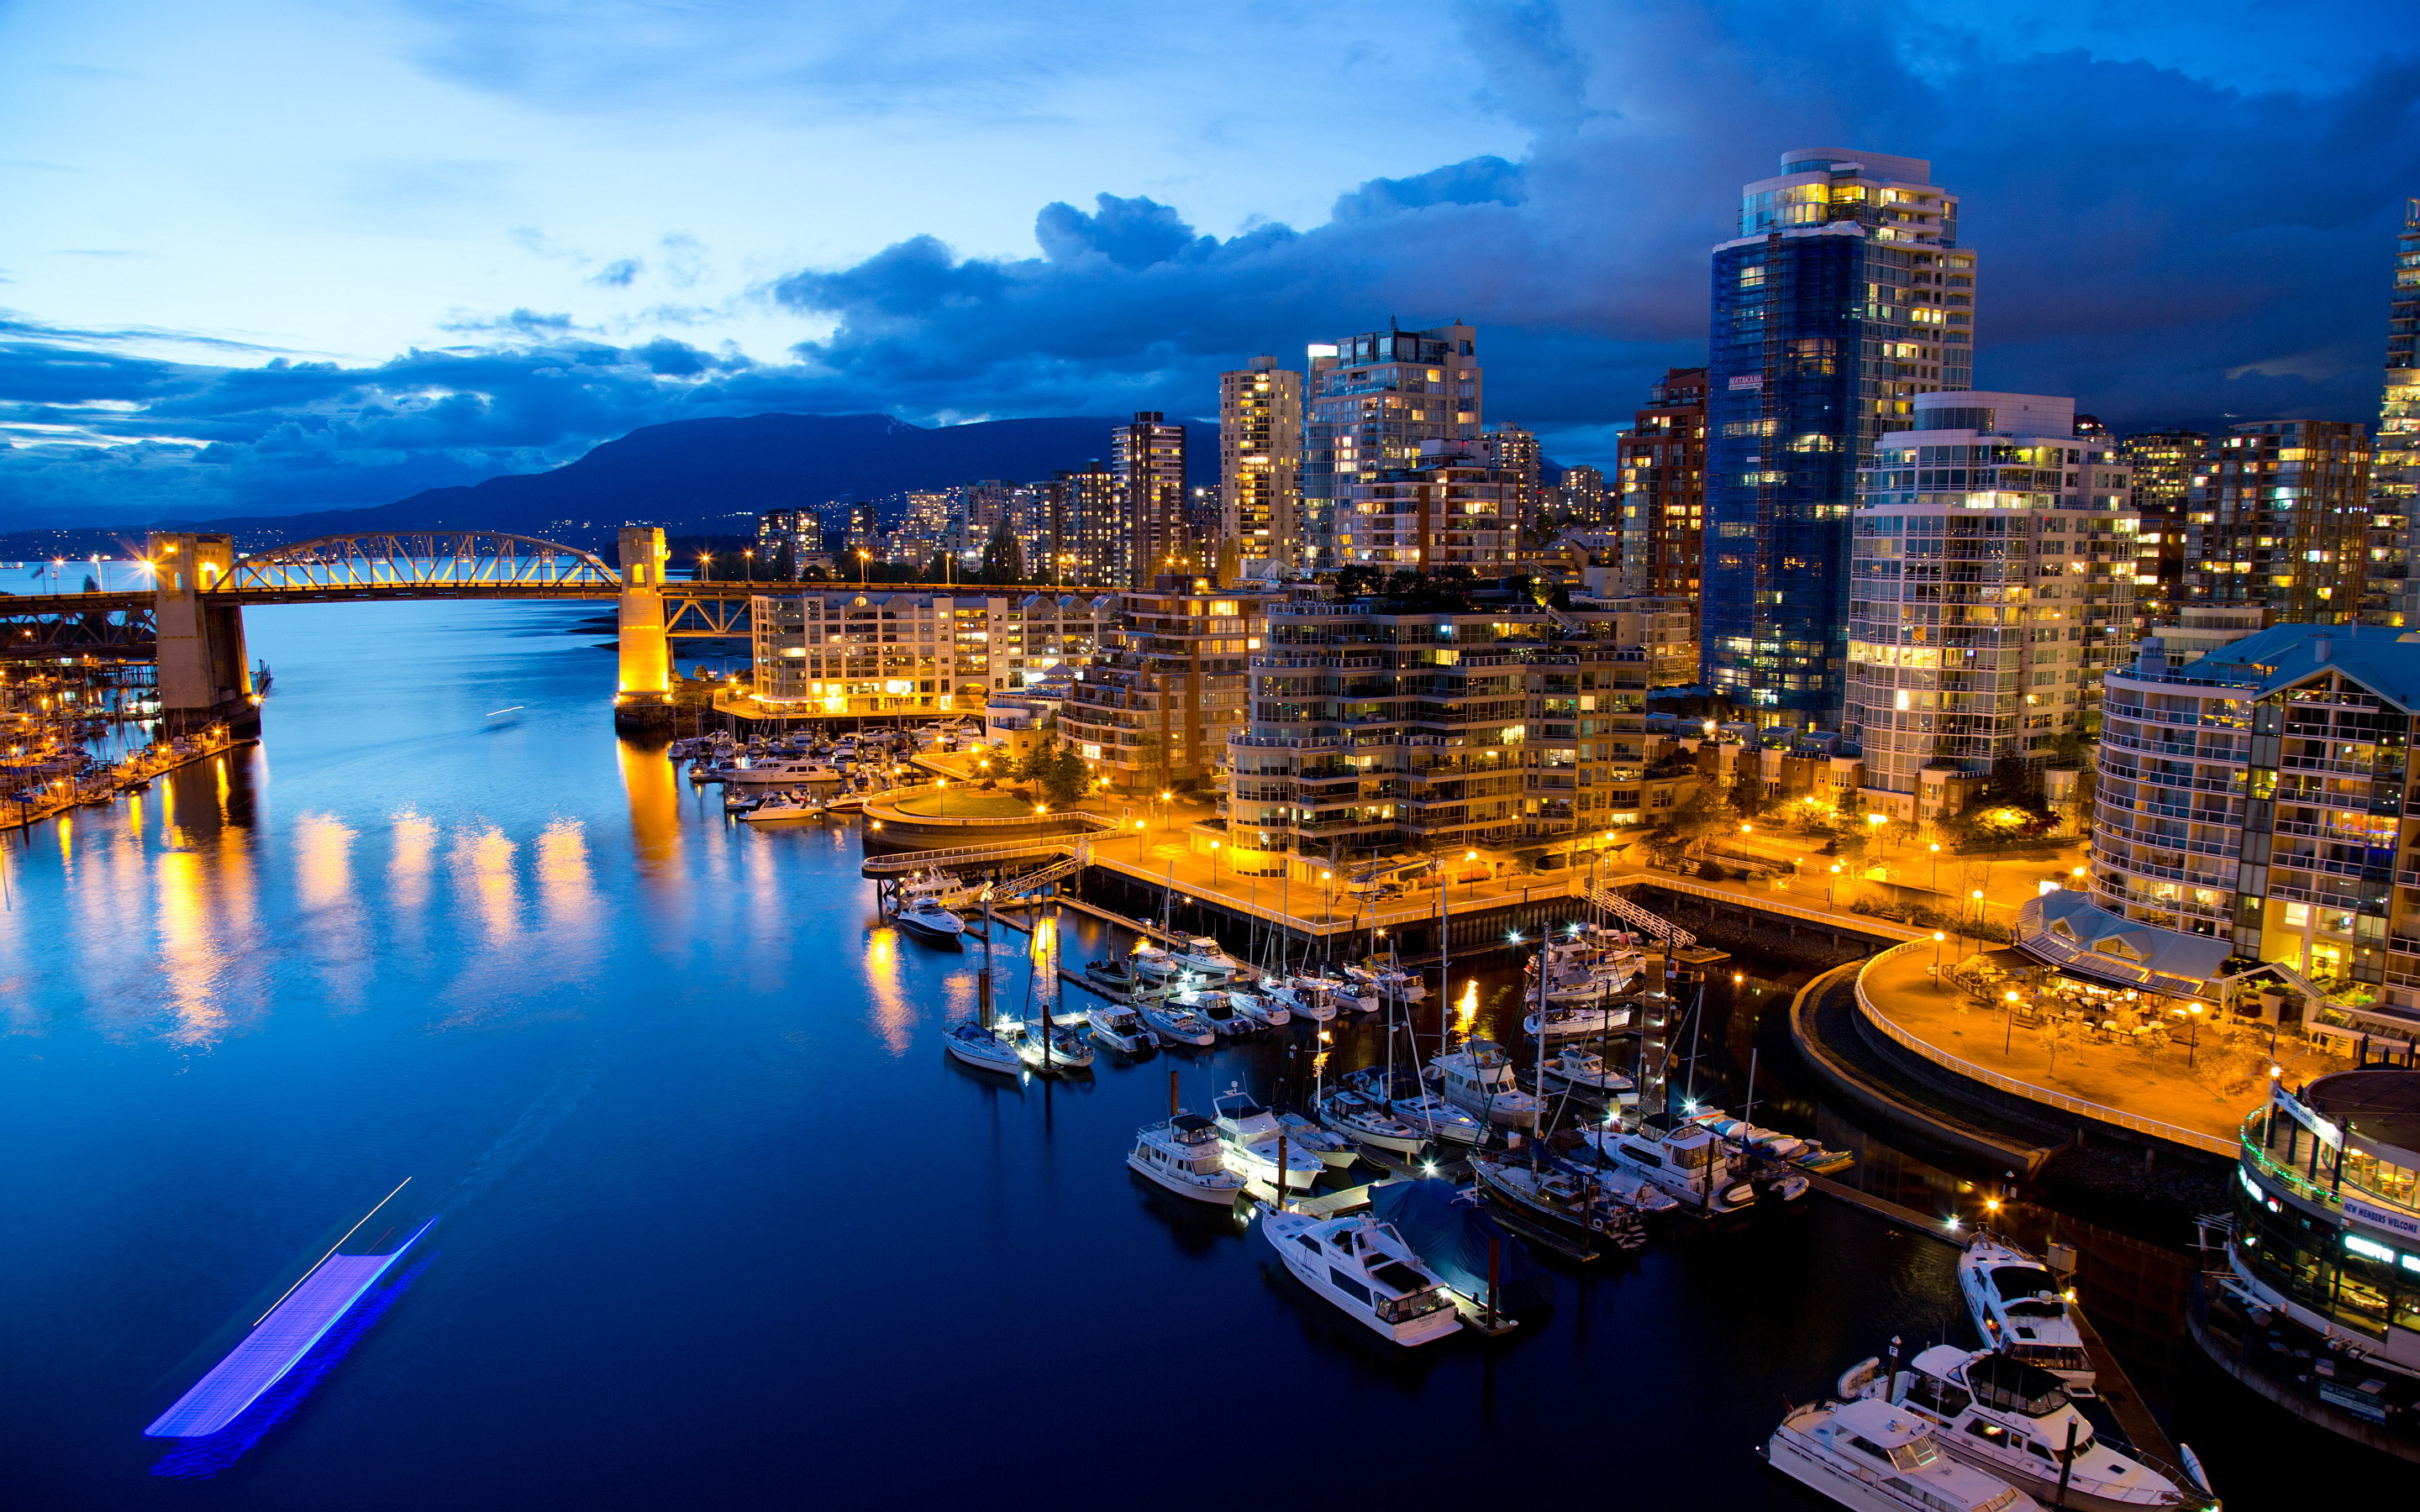 Vancouver-4k-Wallpapers-unabuenaidea.es (4)